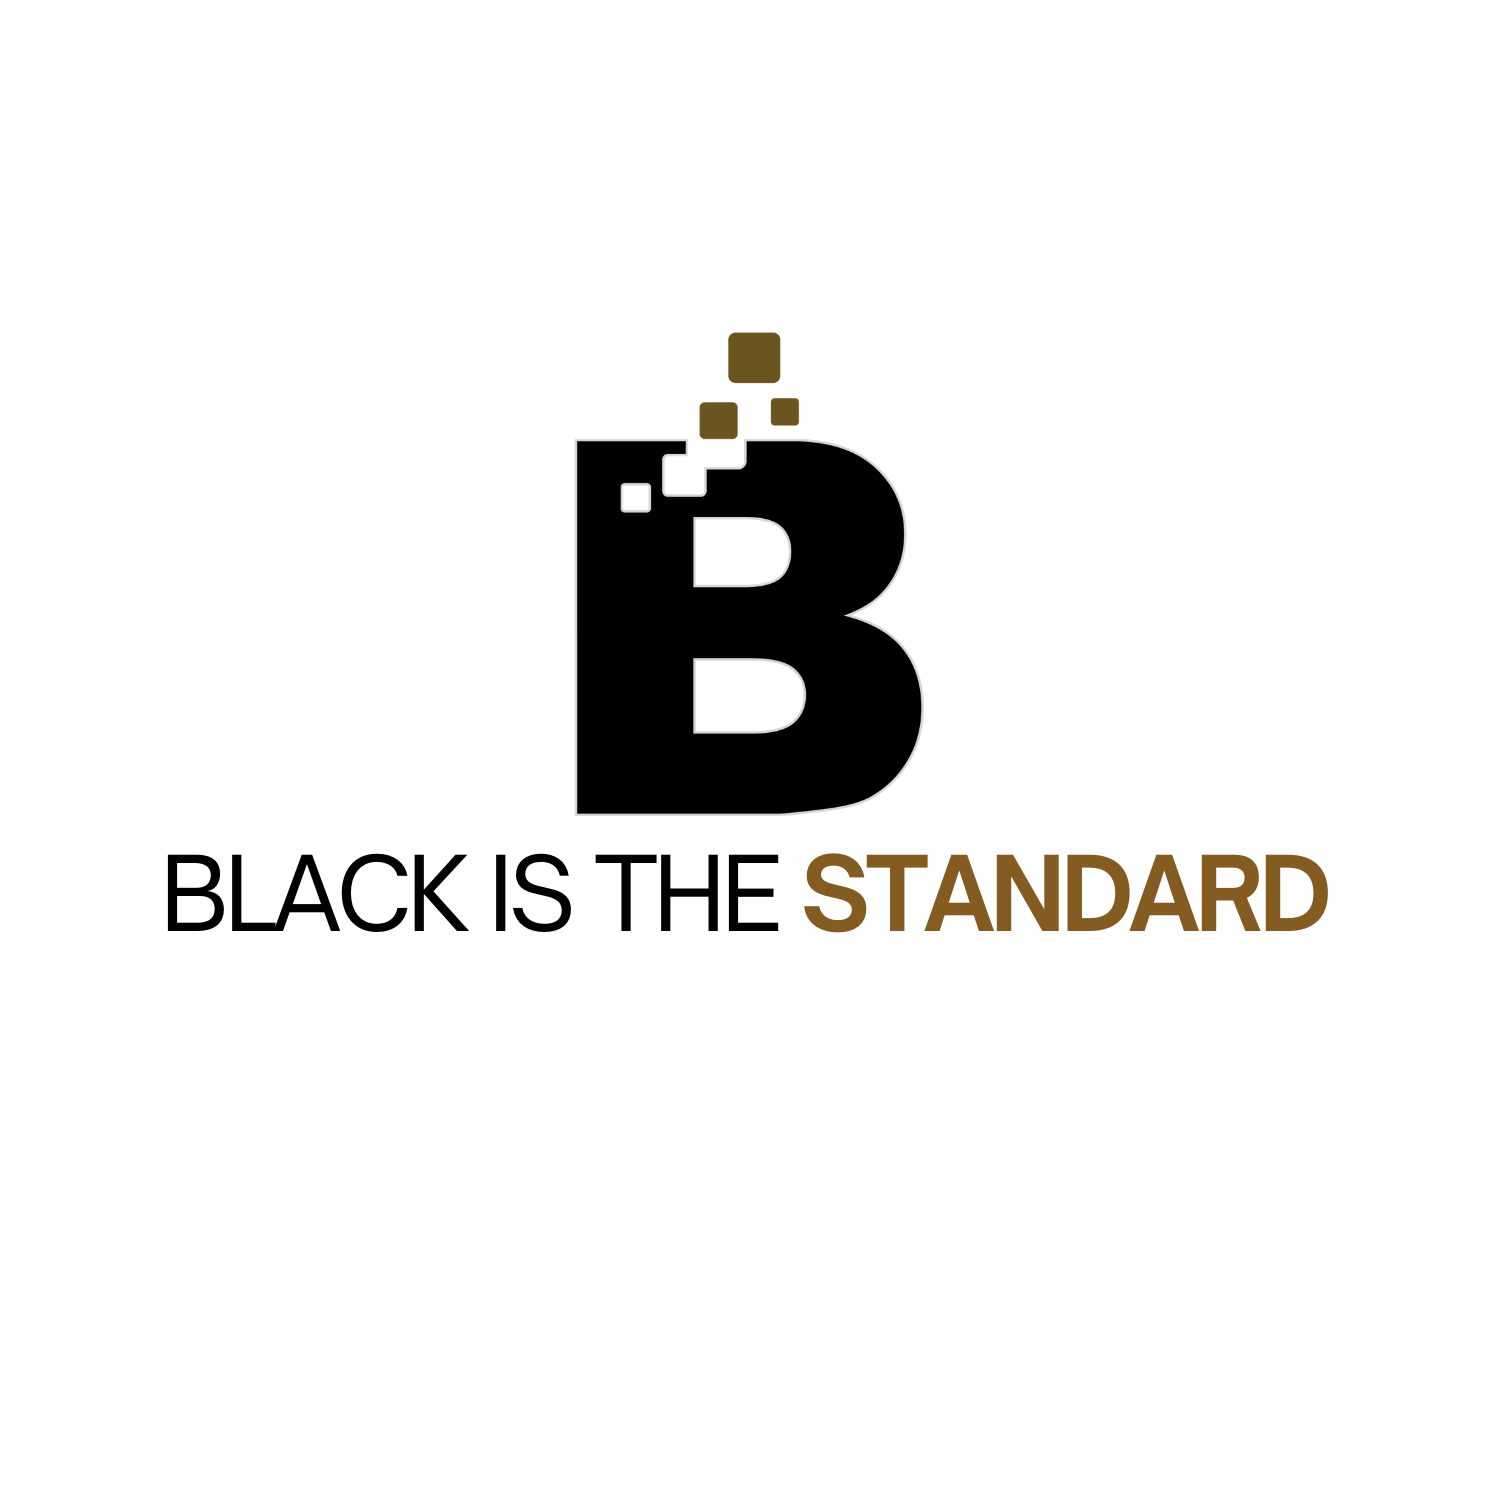 Black Is The Standard